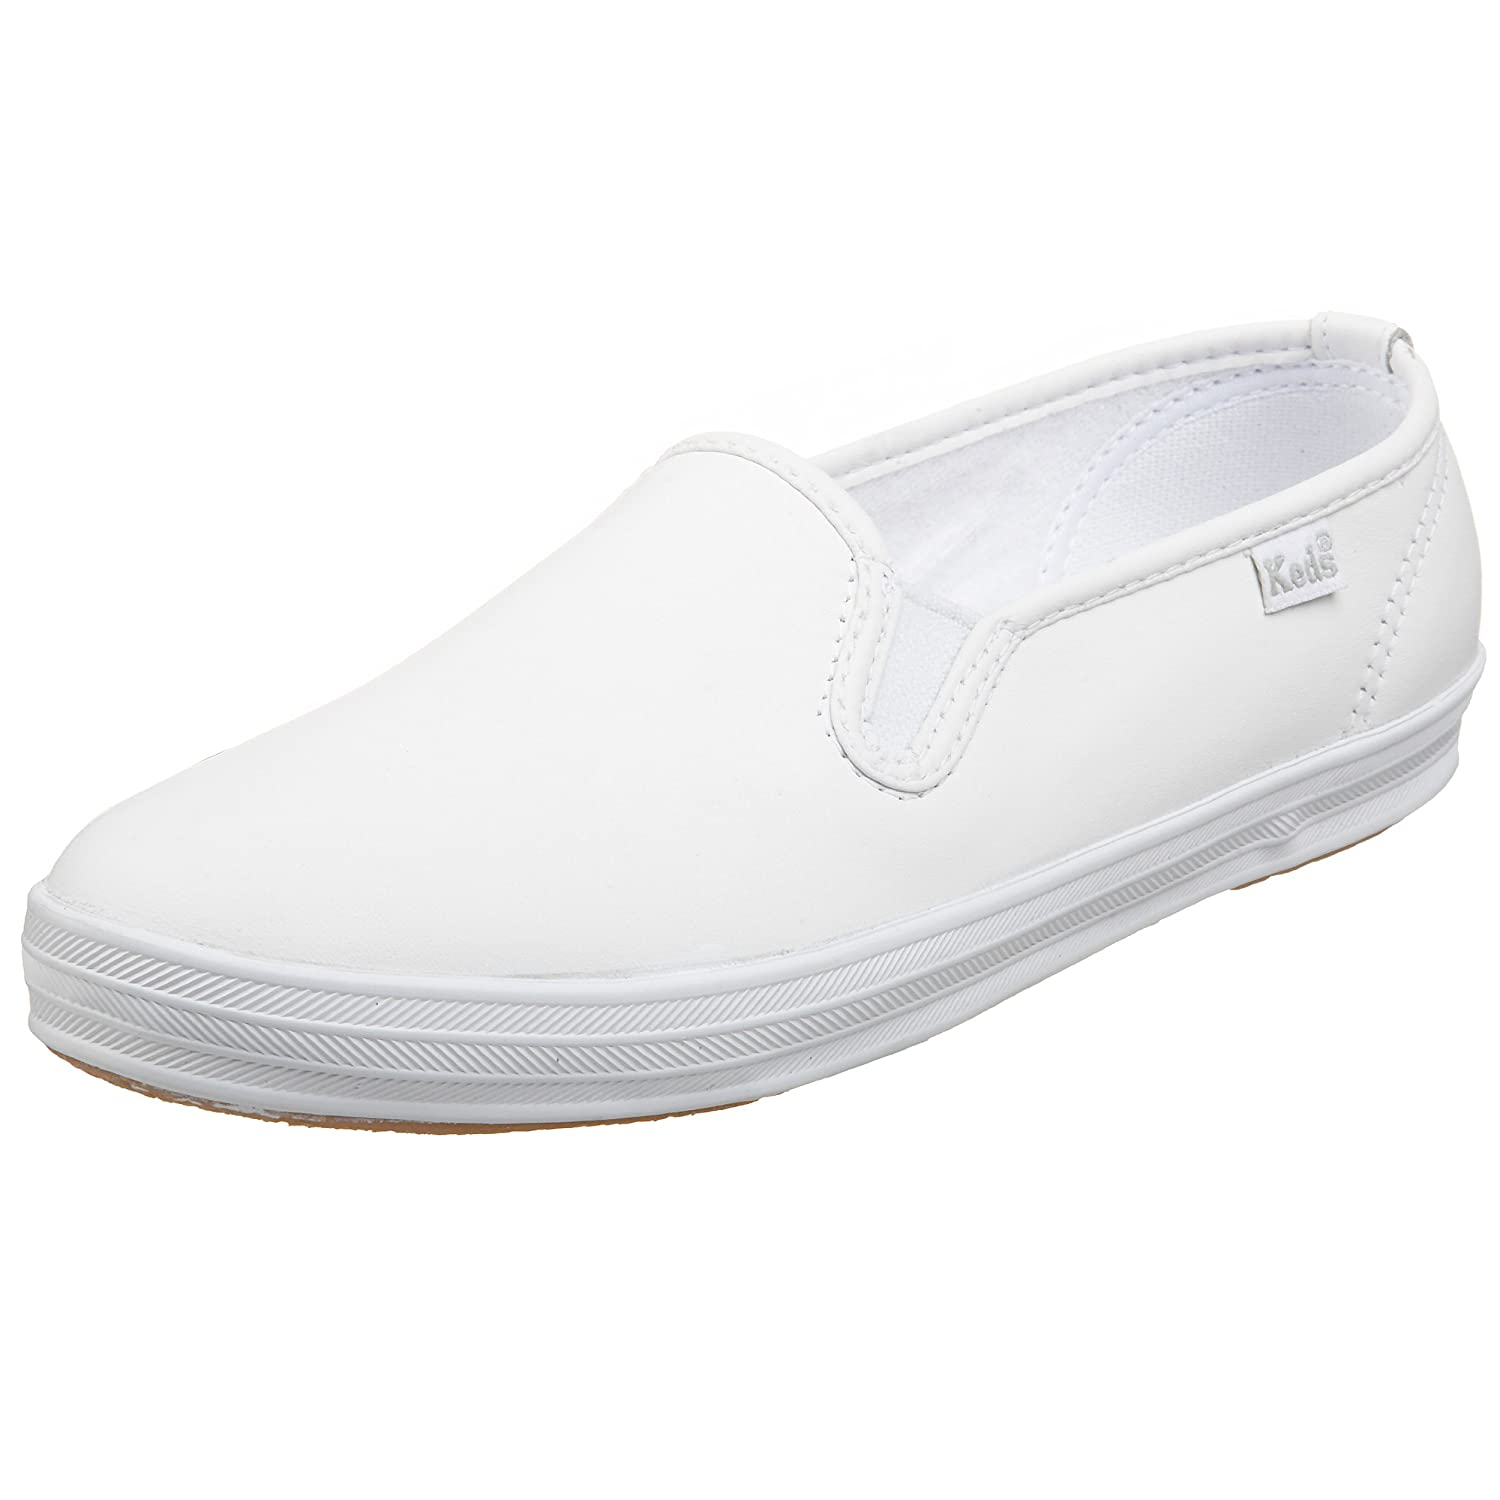 1ce499e7218 outlet Keds Women s Champion Original Leather Slip-On Sneaker ...